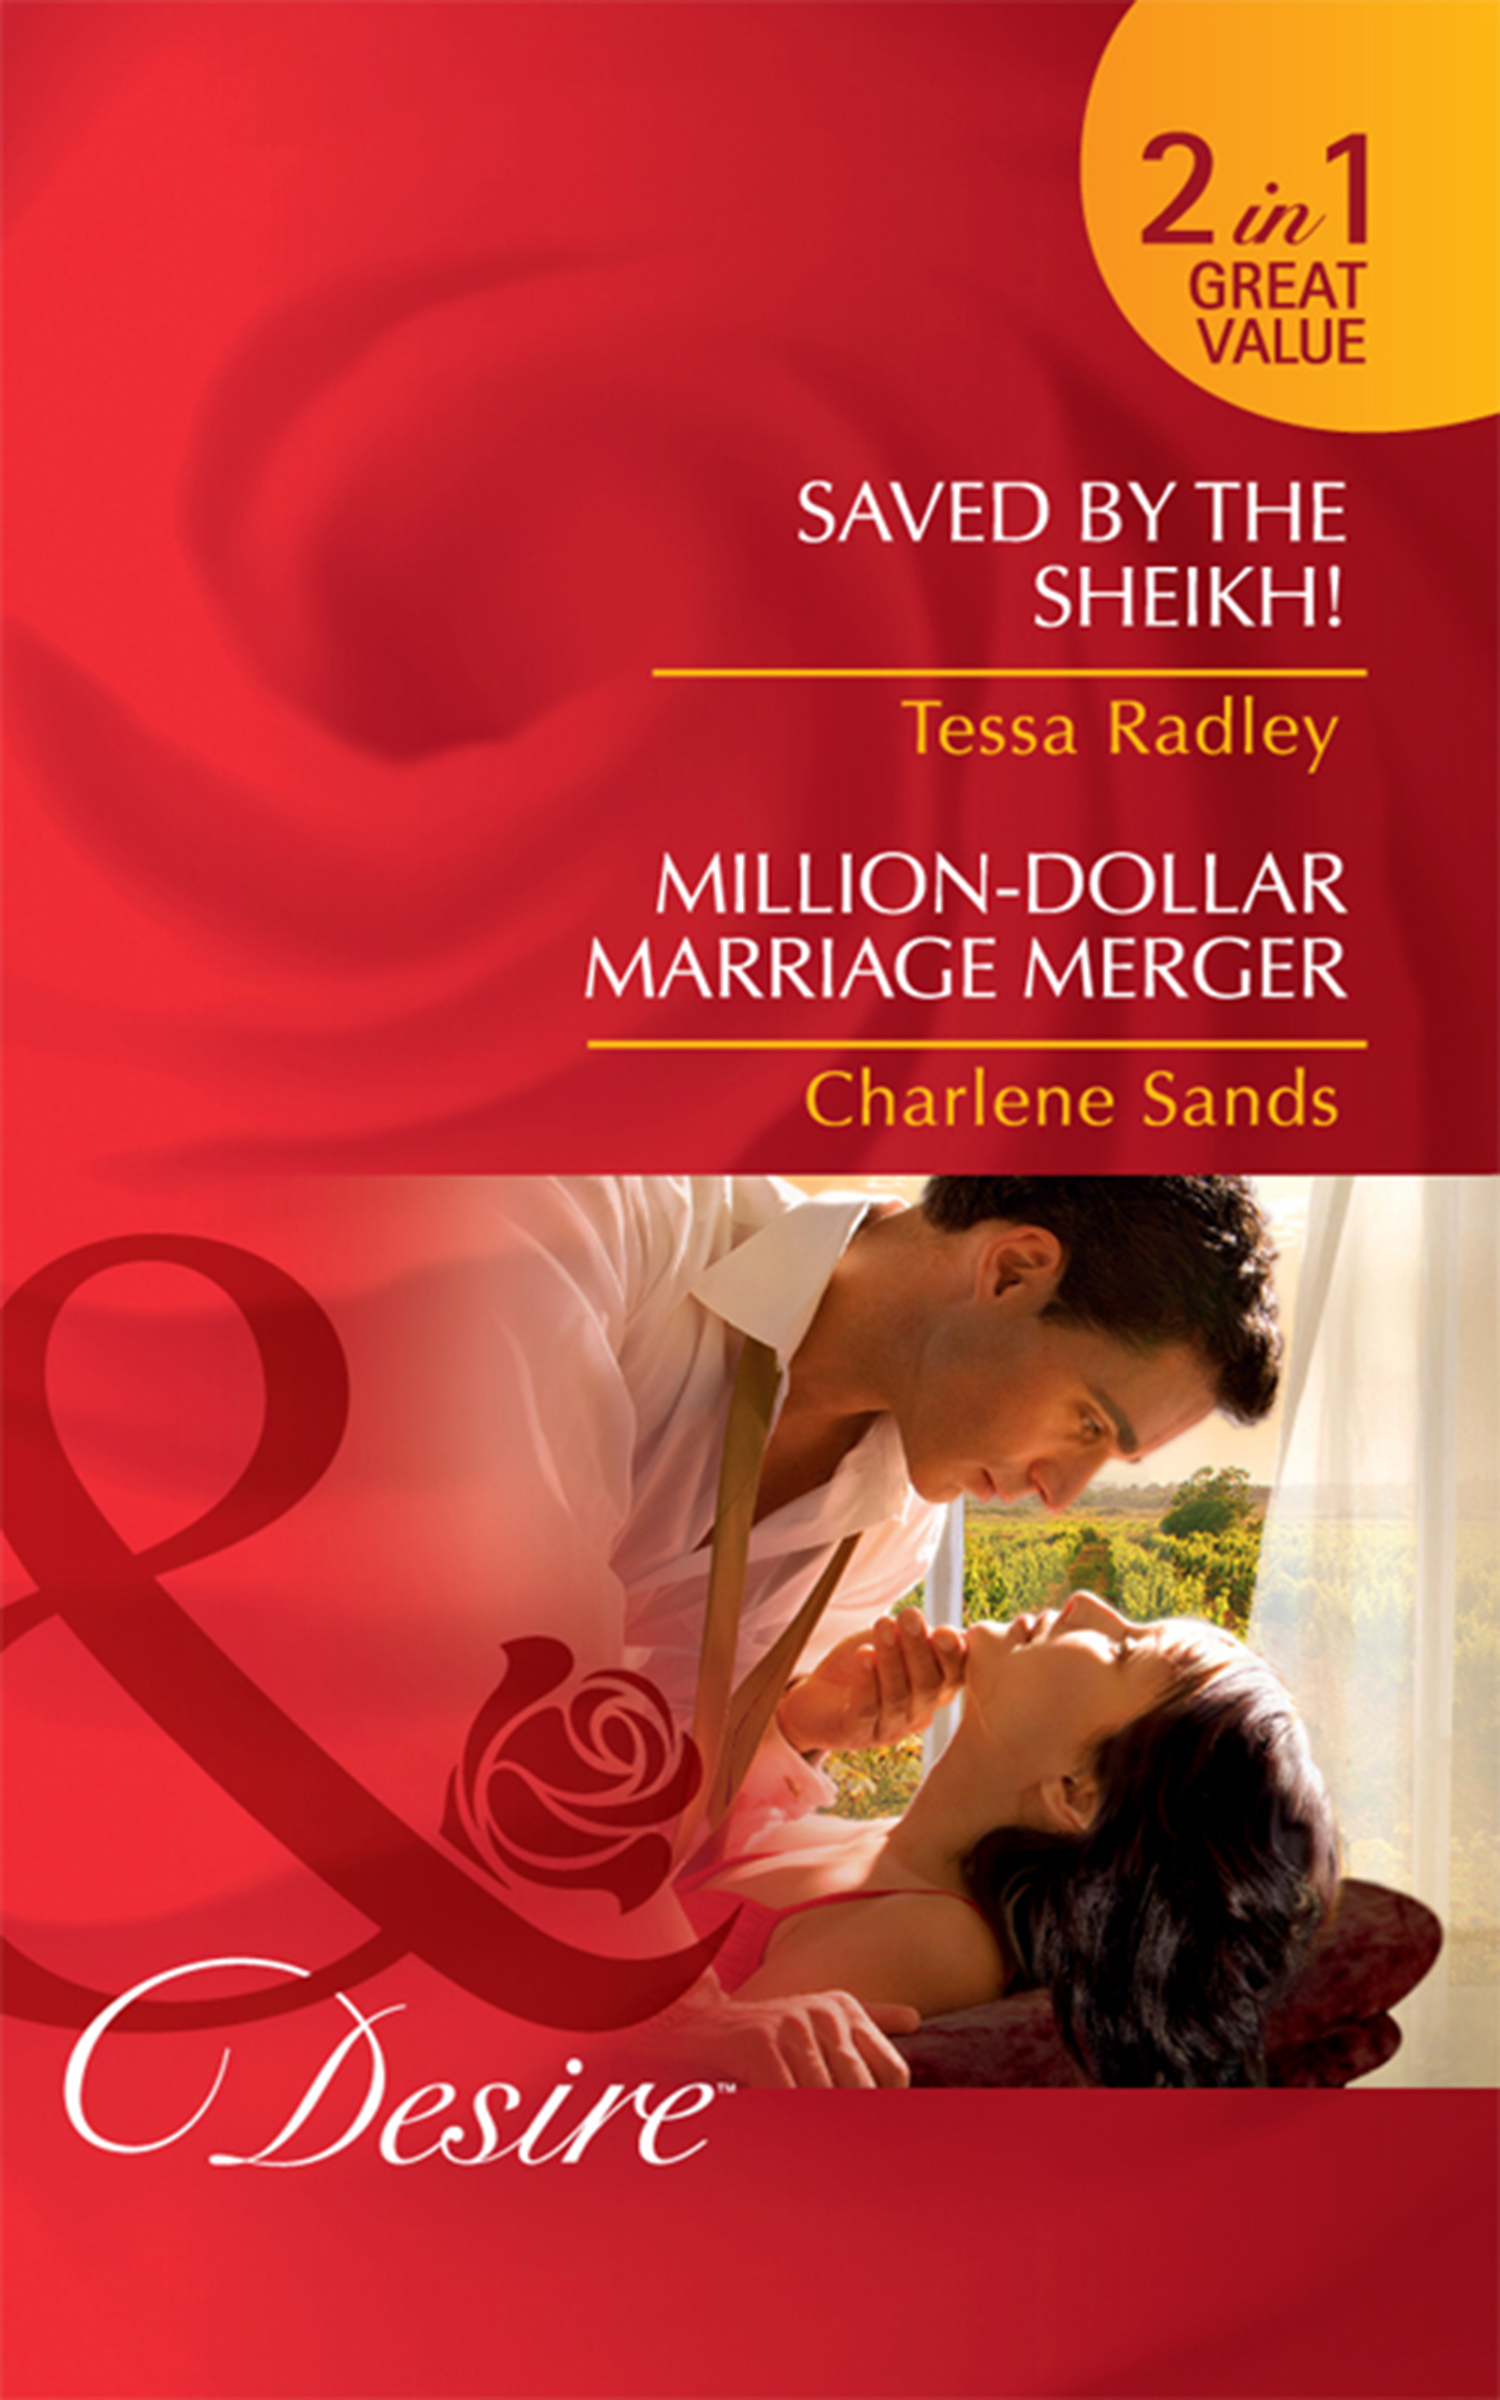 Saved by the Sheikh! \/ Million-Dollar Marriage Merger: Saved by the Sheikh! \/ Million-Dollar Marriage Merger